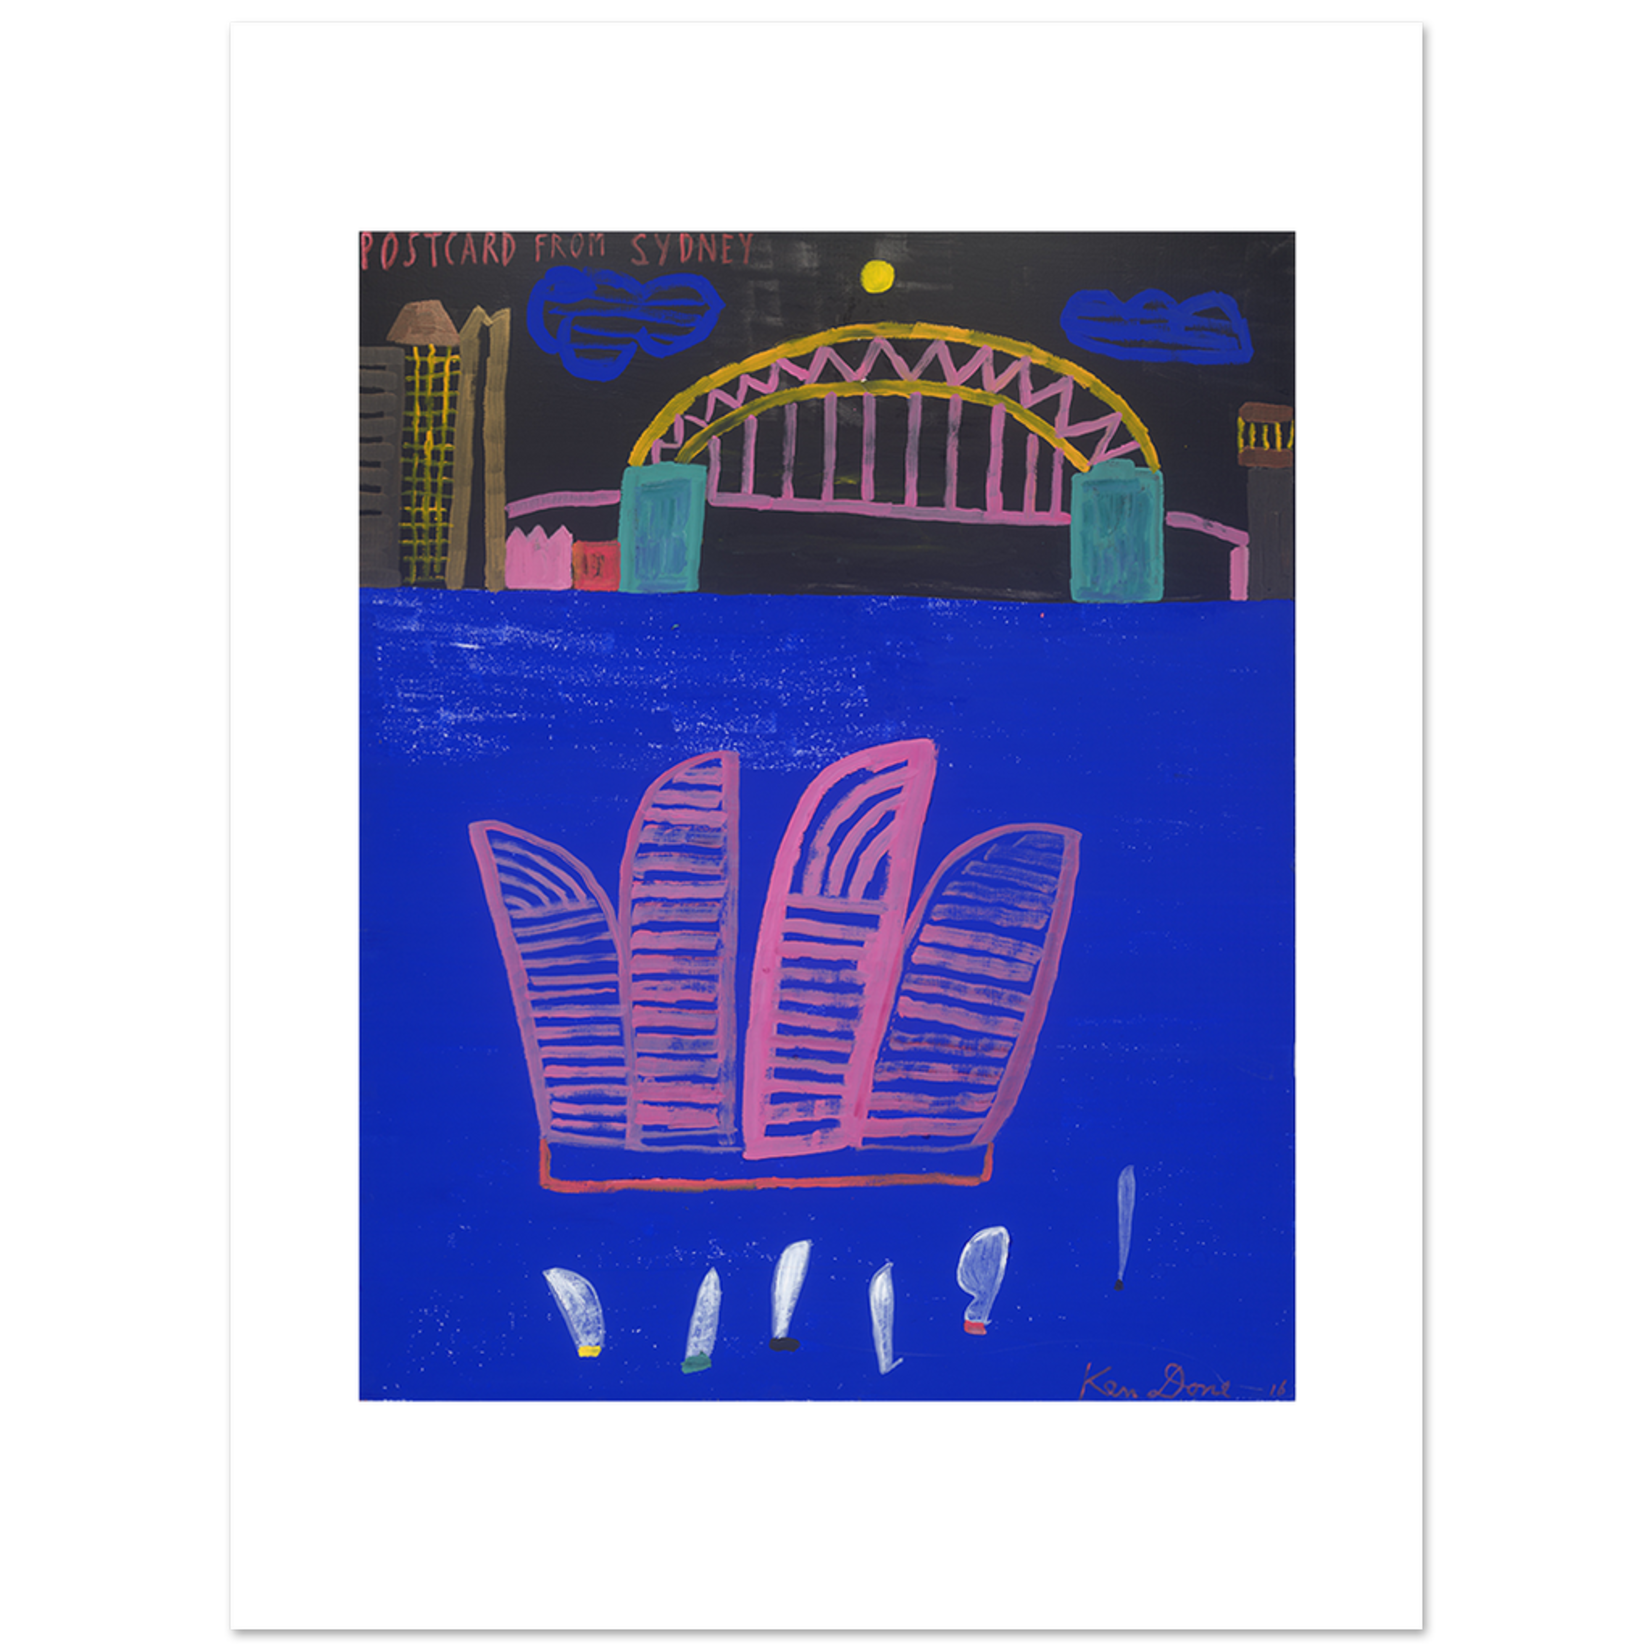 Limited Edition Prints Postcard from Sydney, pink Opera House, 2016